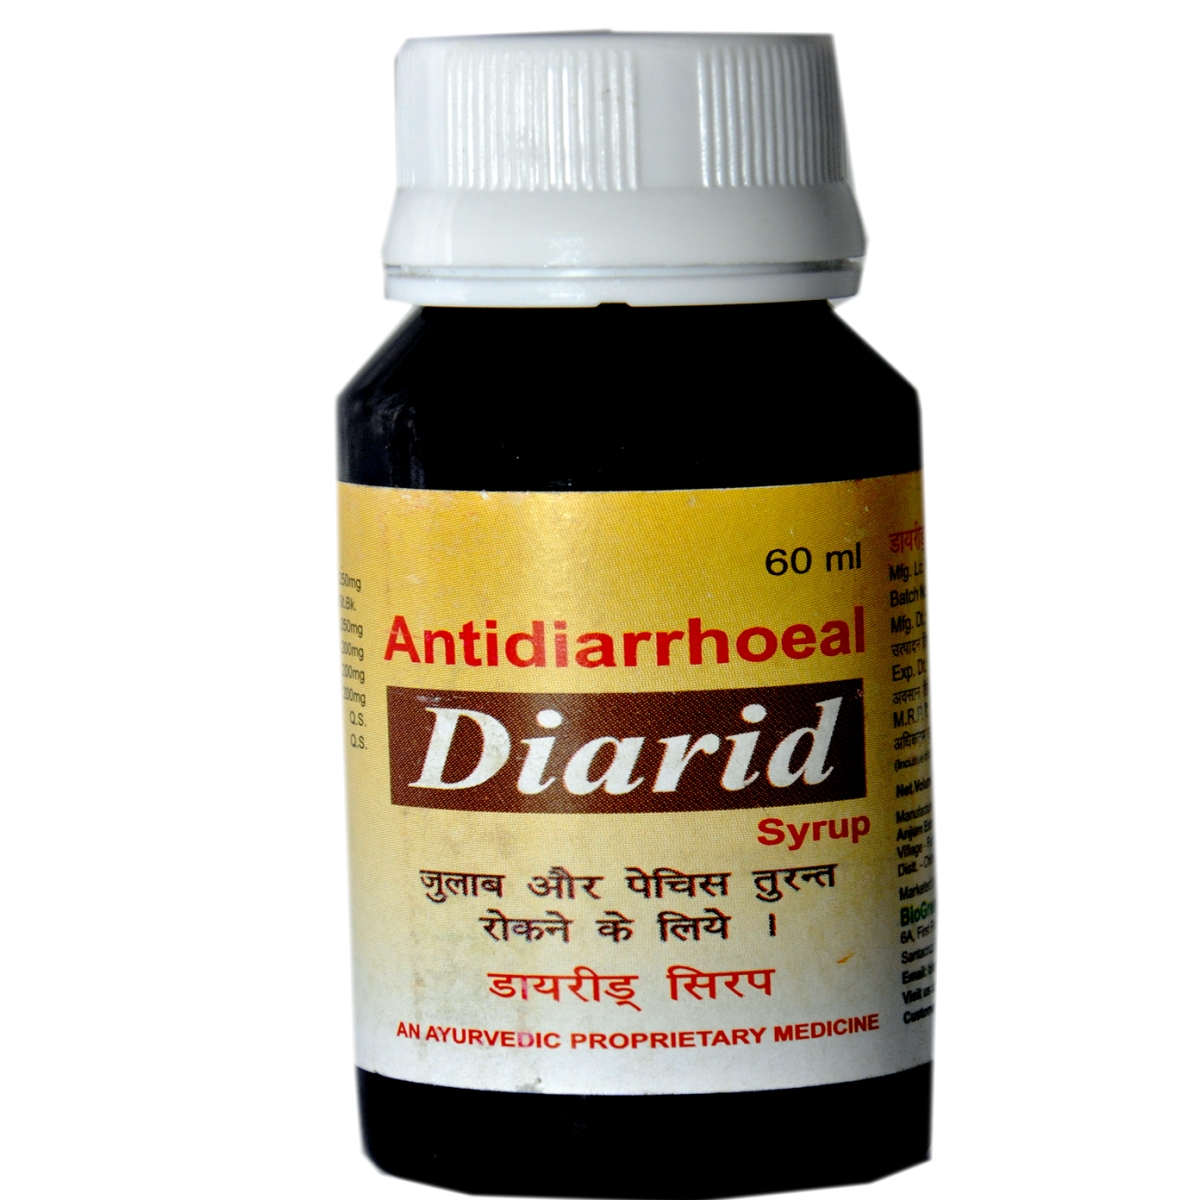 Diarid Syrup In Upper Siang